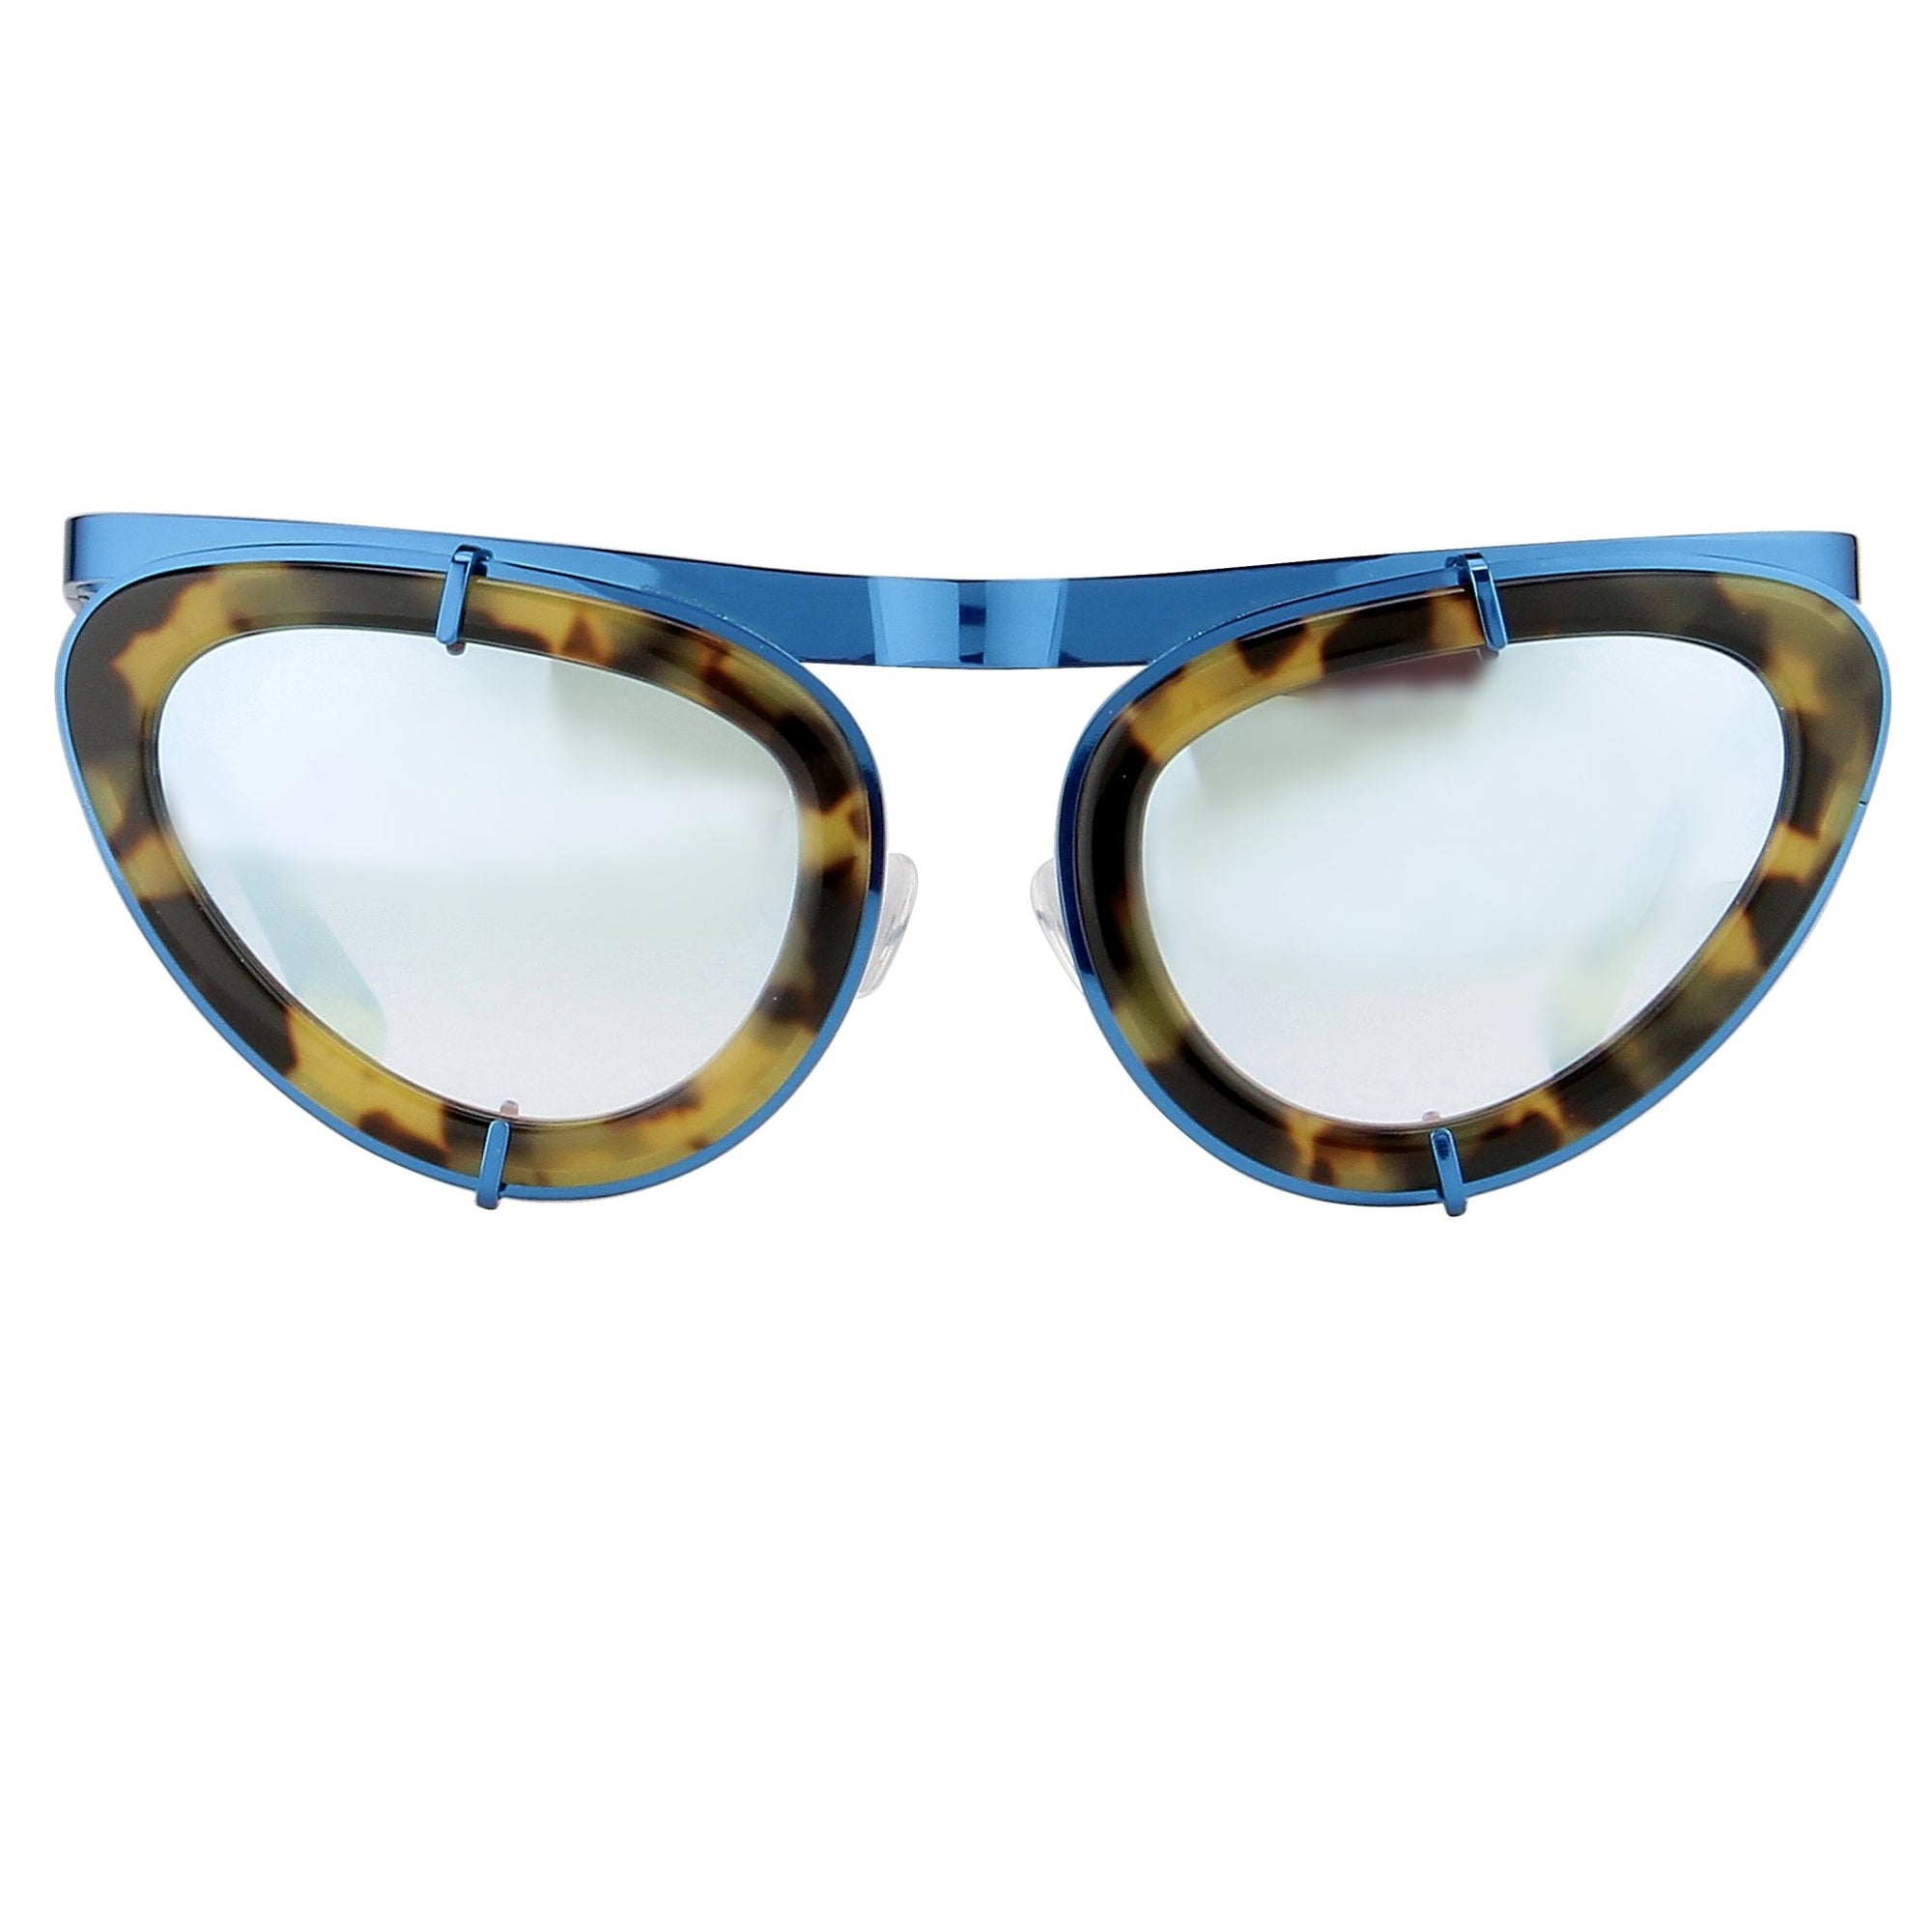 Erdem Women Sunglasses Cat Eye Tortoiseshell/Blue and Blue Mirror Lenses - EDM3C3SUN - Watches & Crystals